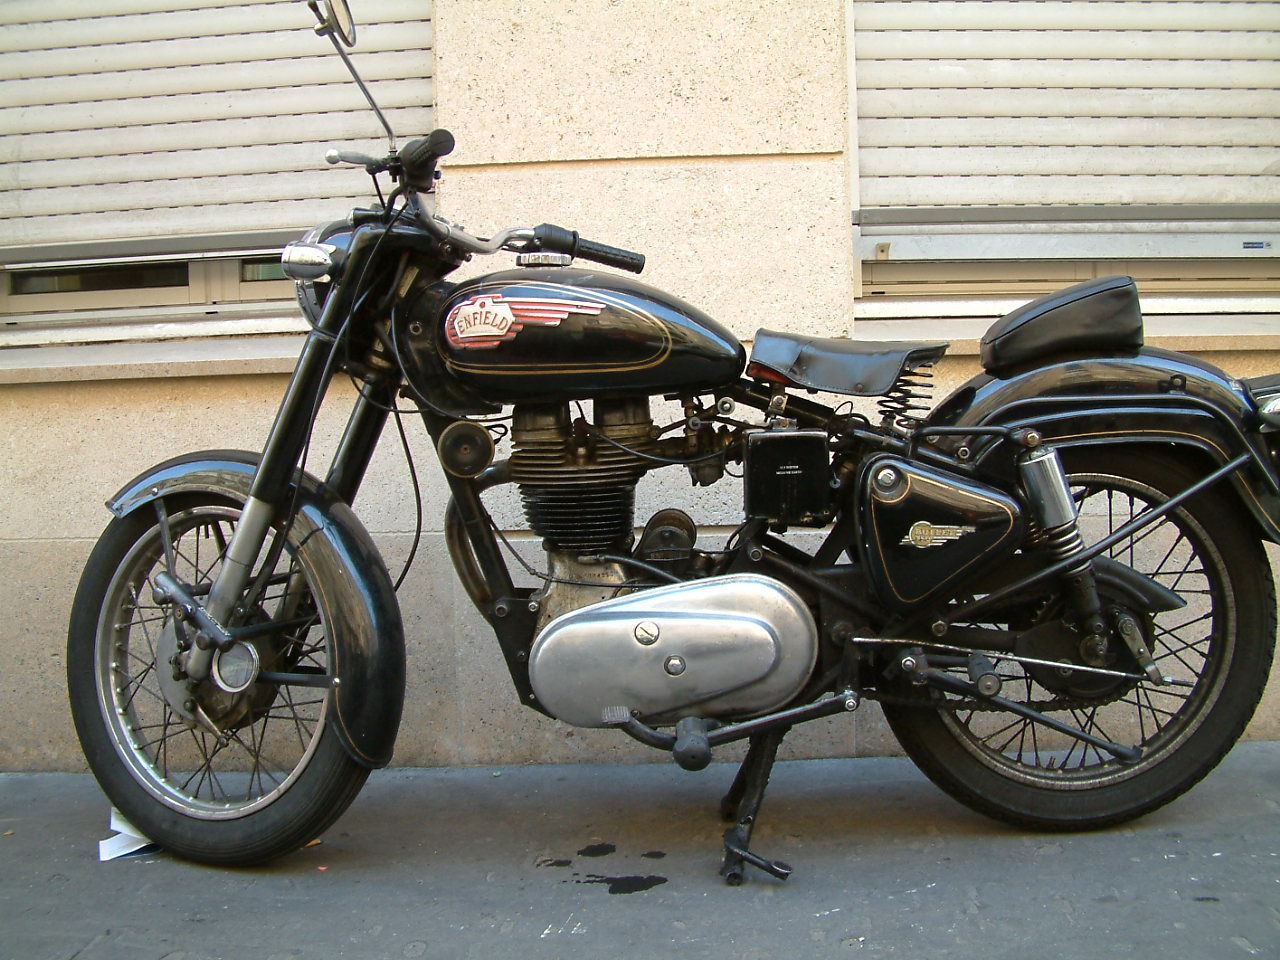 Royal Enfield Bullet 500 Army 1995 images #122804